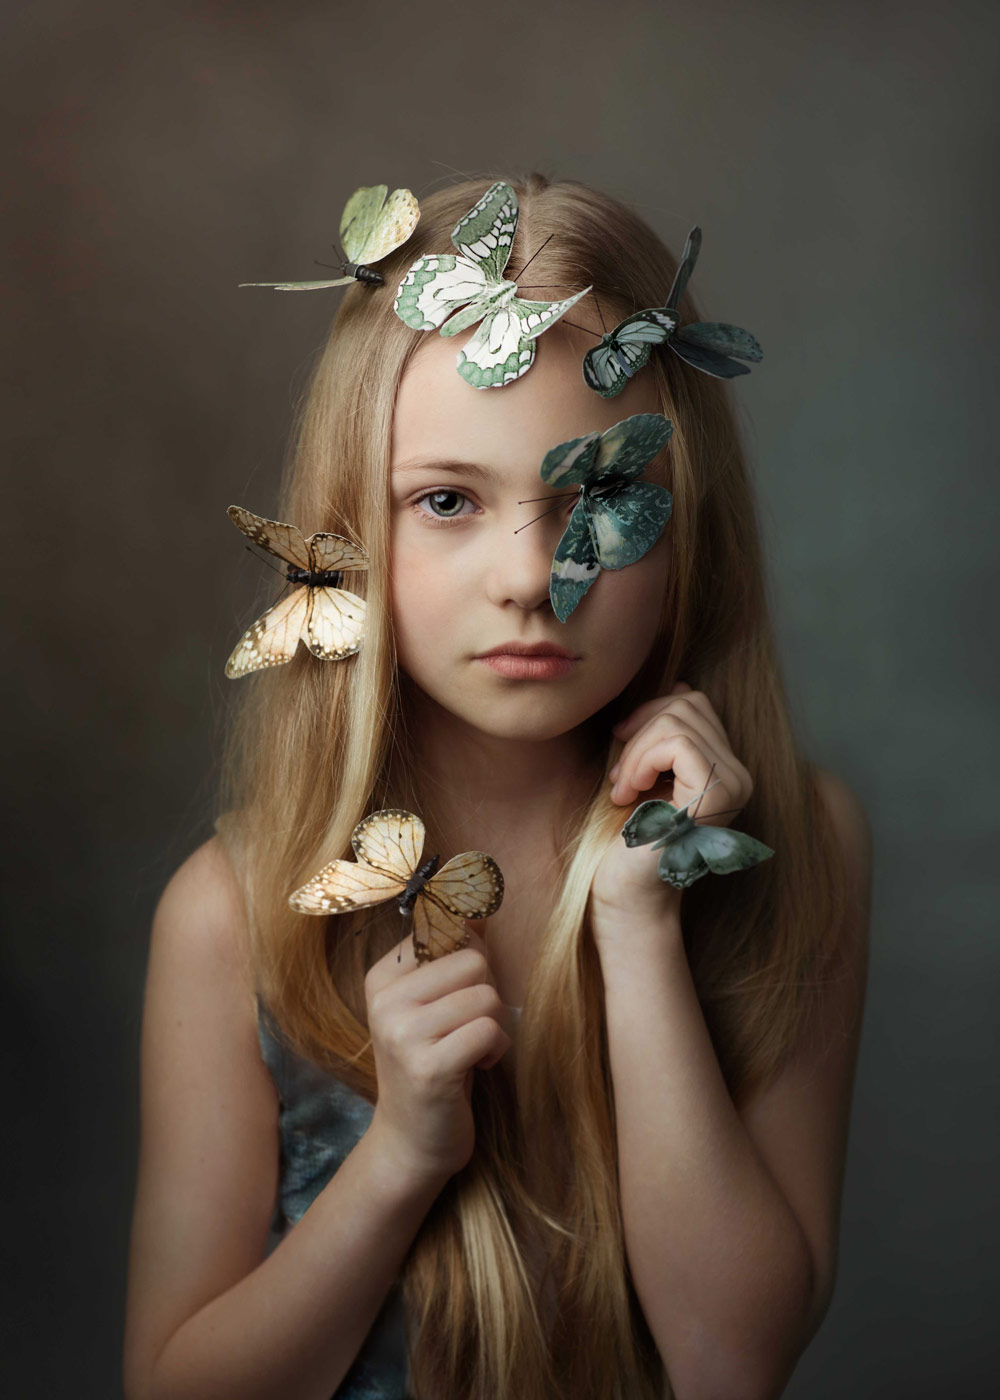 Butterfly Effect, © Mariola Glajcar, Poland, April 2019 Winner, Photo Competition for Child Portrait Photographers